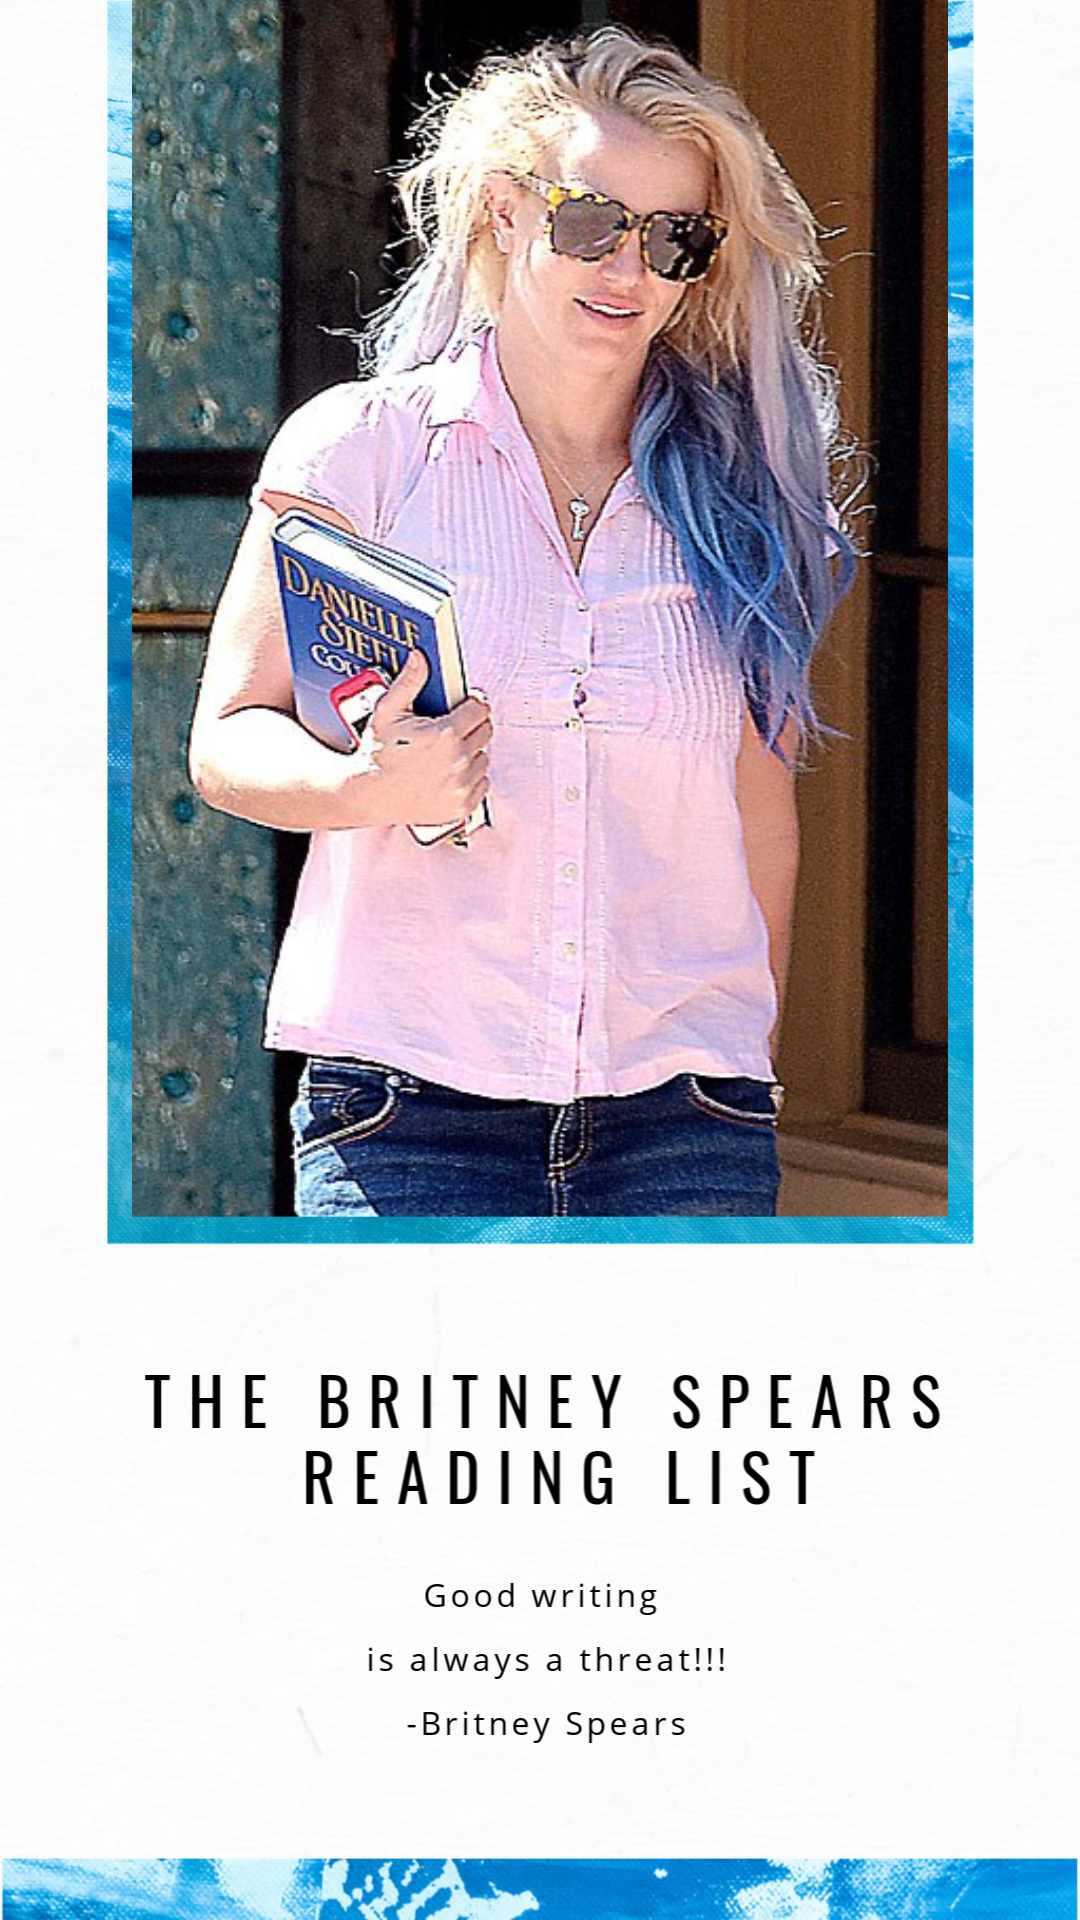 The Britney Spears reading list